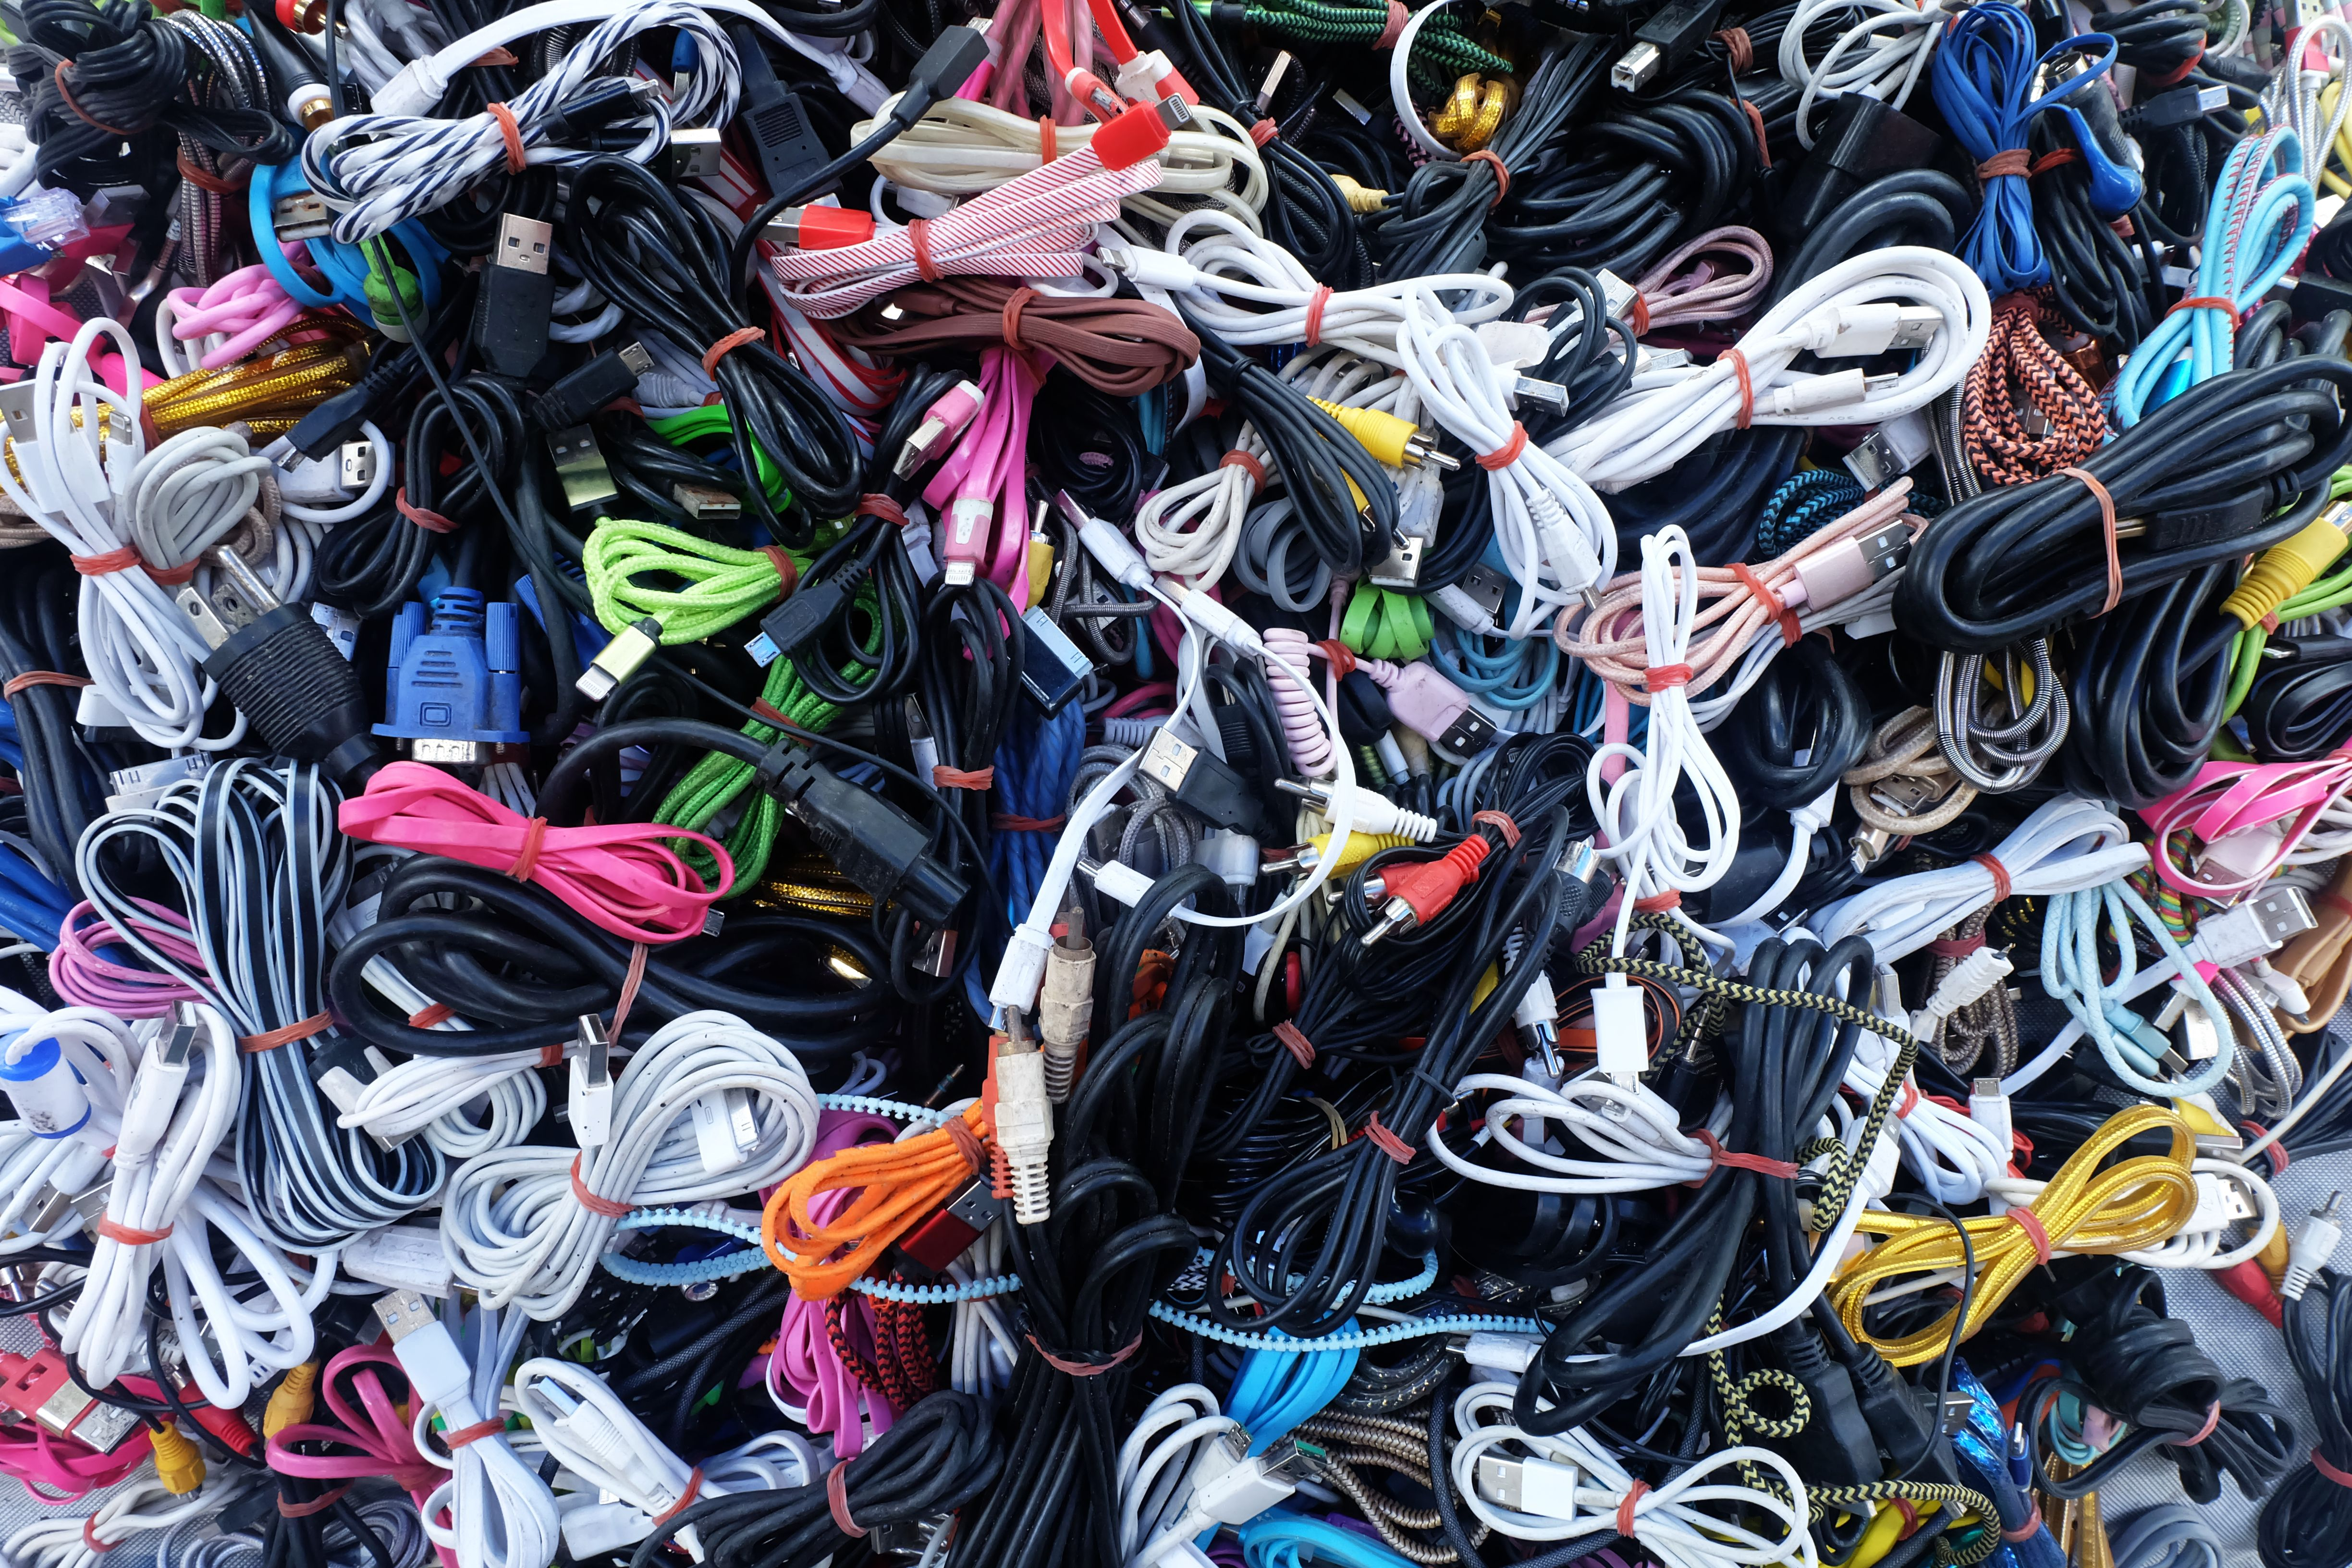 EU calls for common charger cables to fight global e-waste levels